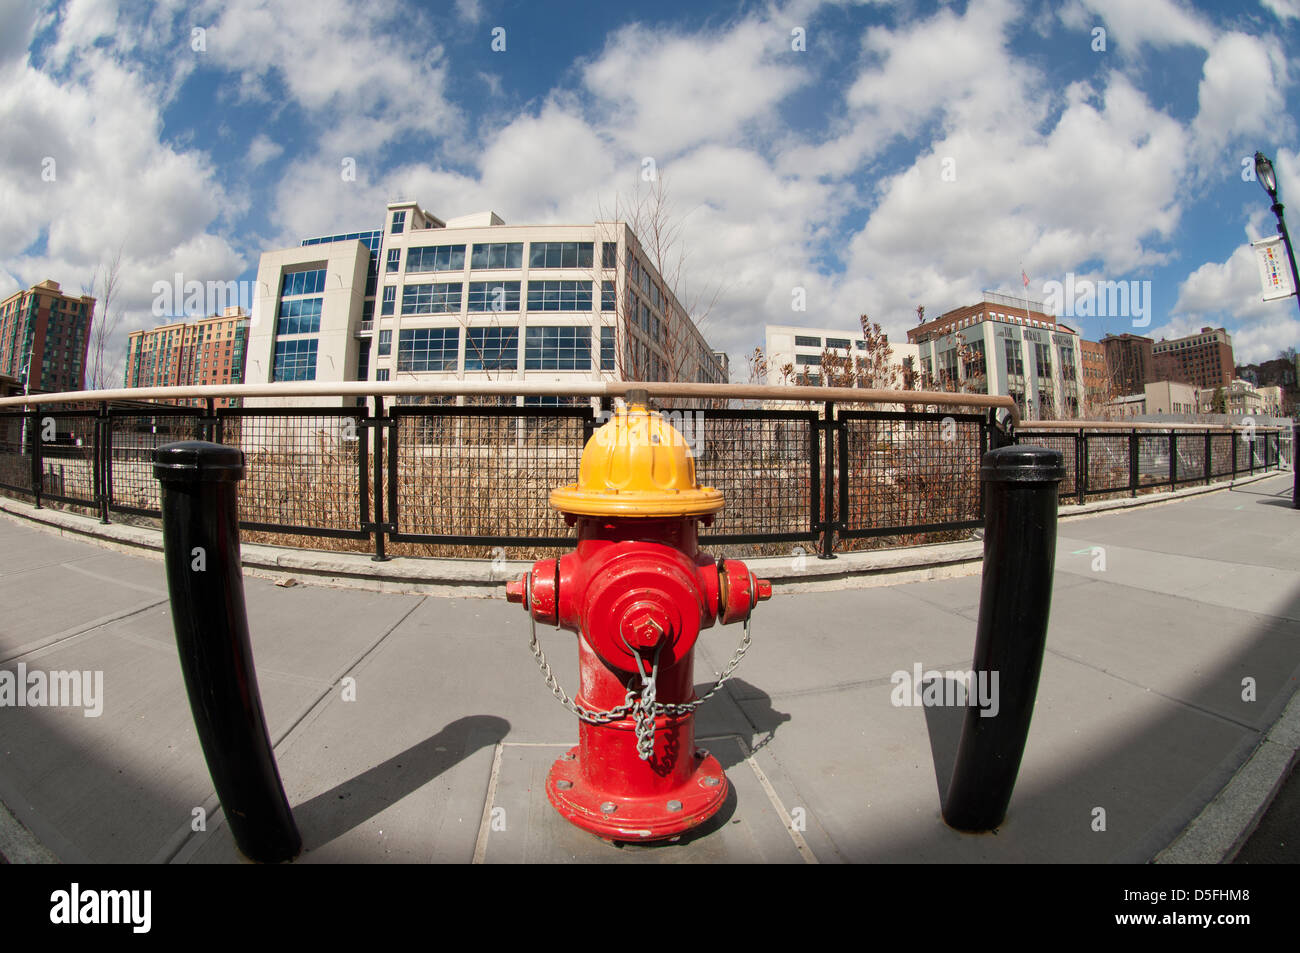 Fire hydrant in downtown Yonkers in Westchester County in New York State - Stock Image